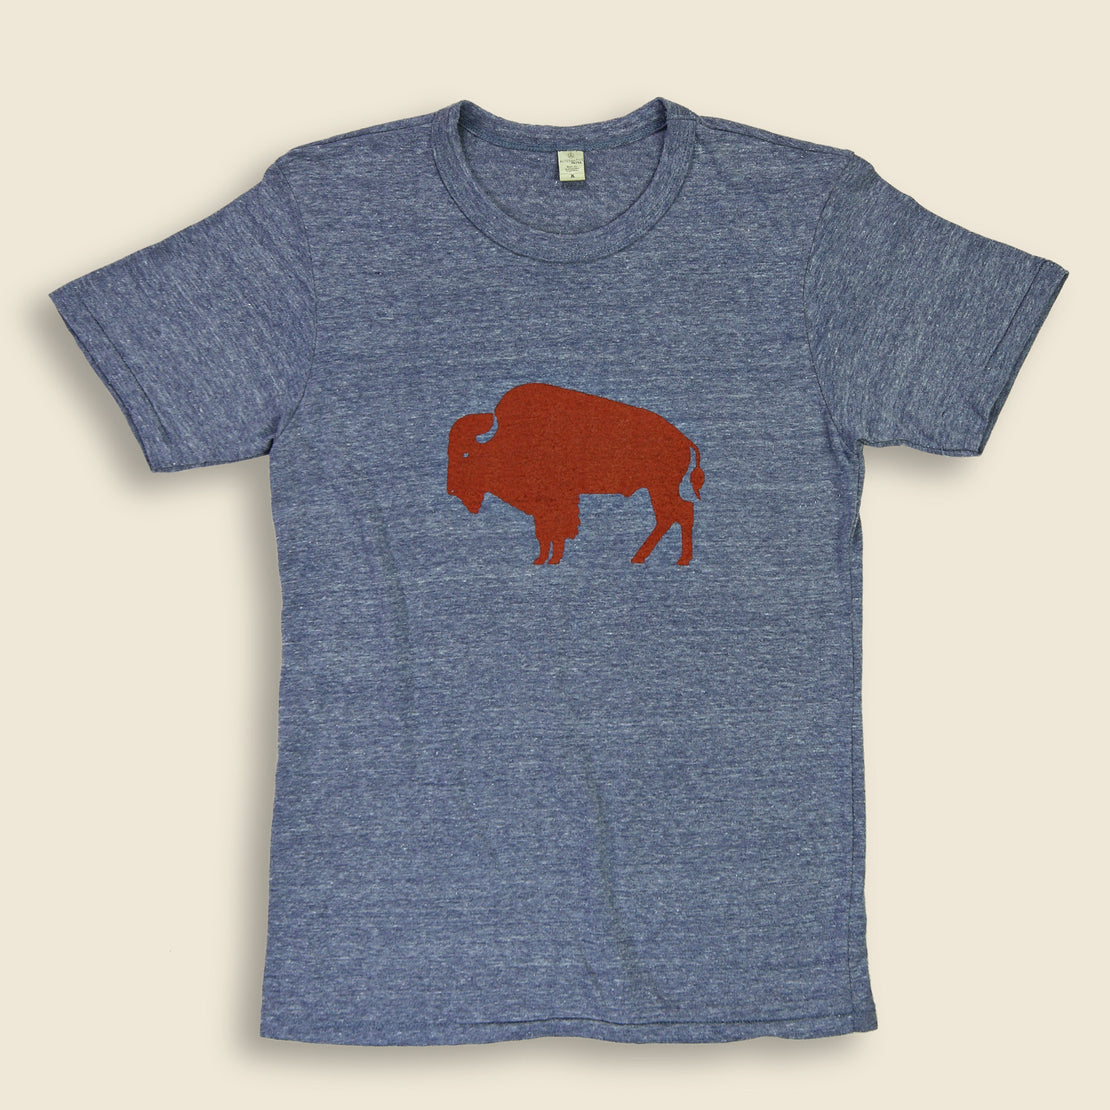 Alchemy Design Graphic Tee - Buffalo